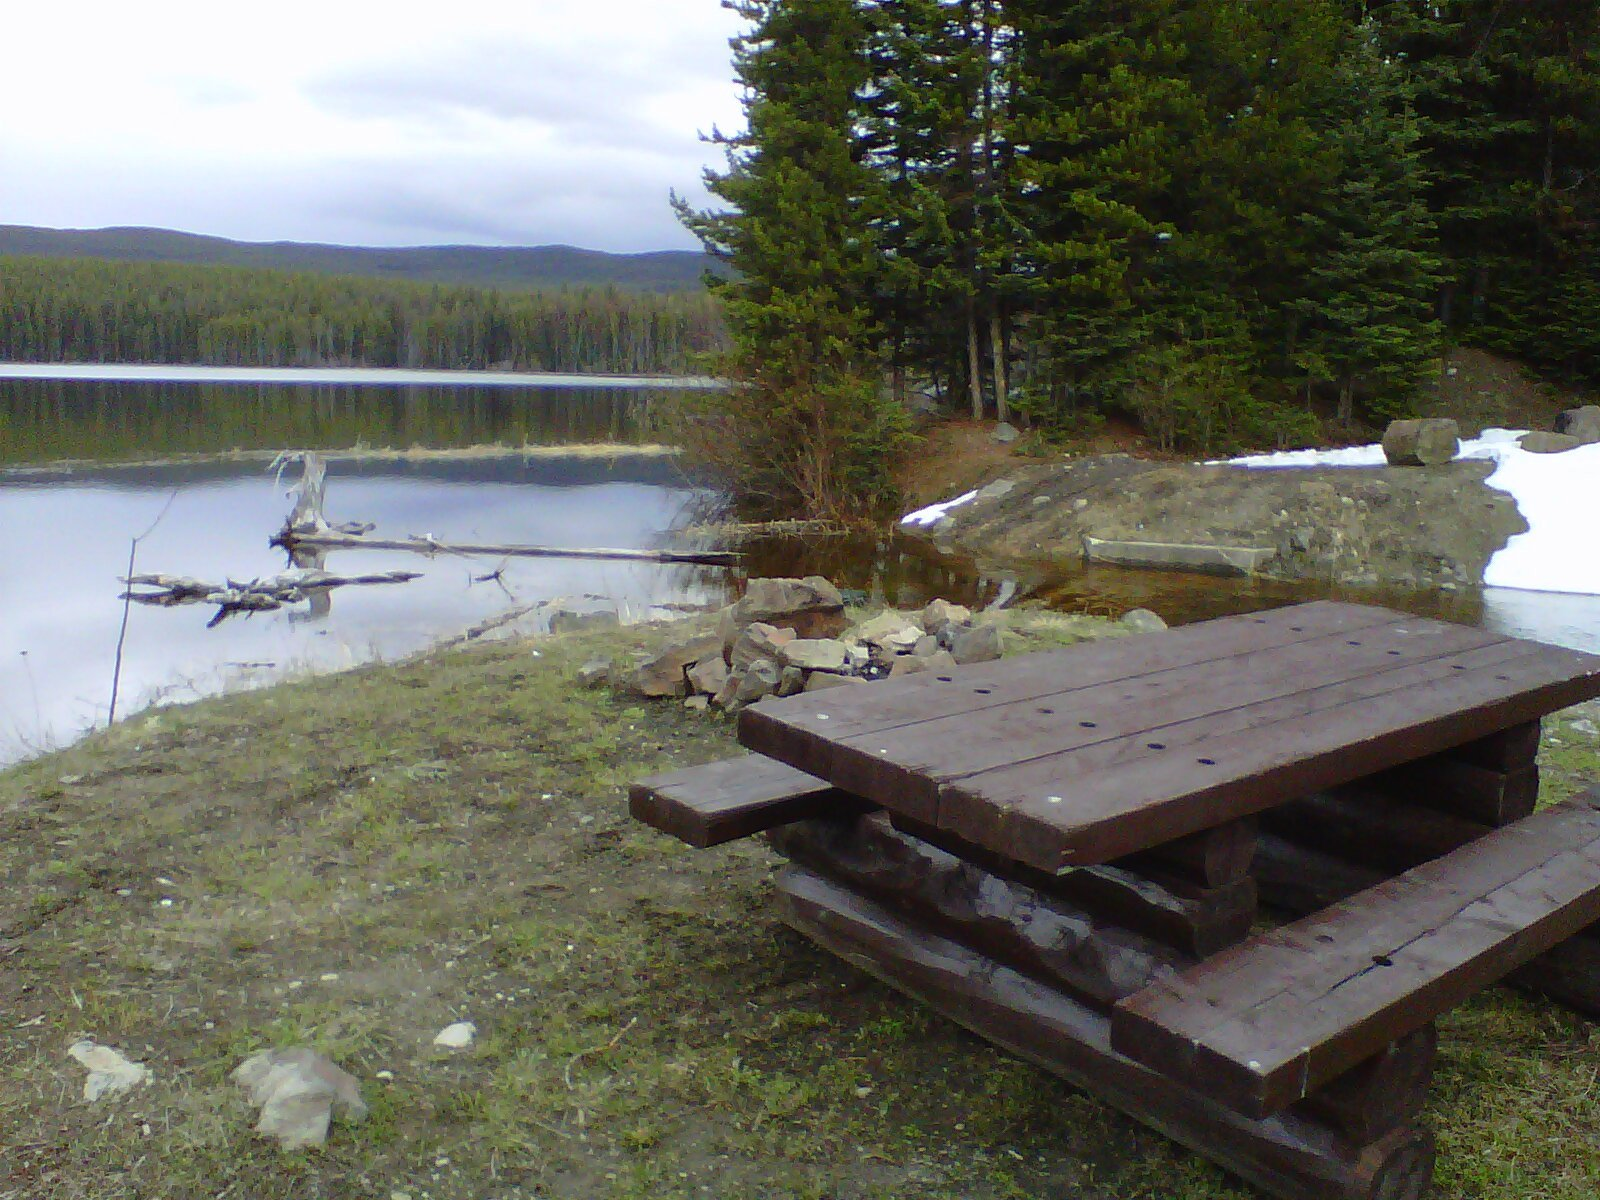 James Lake Recreation Site and camping near Kelowna BC.